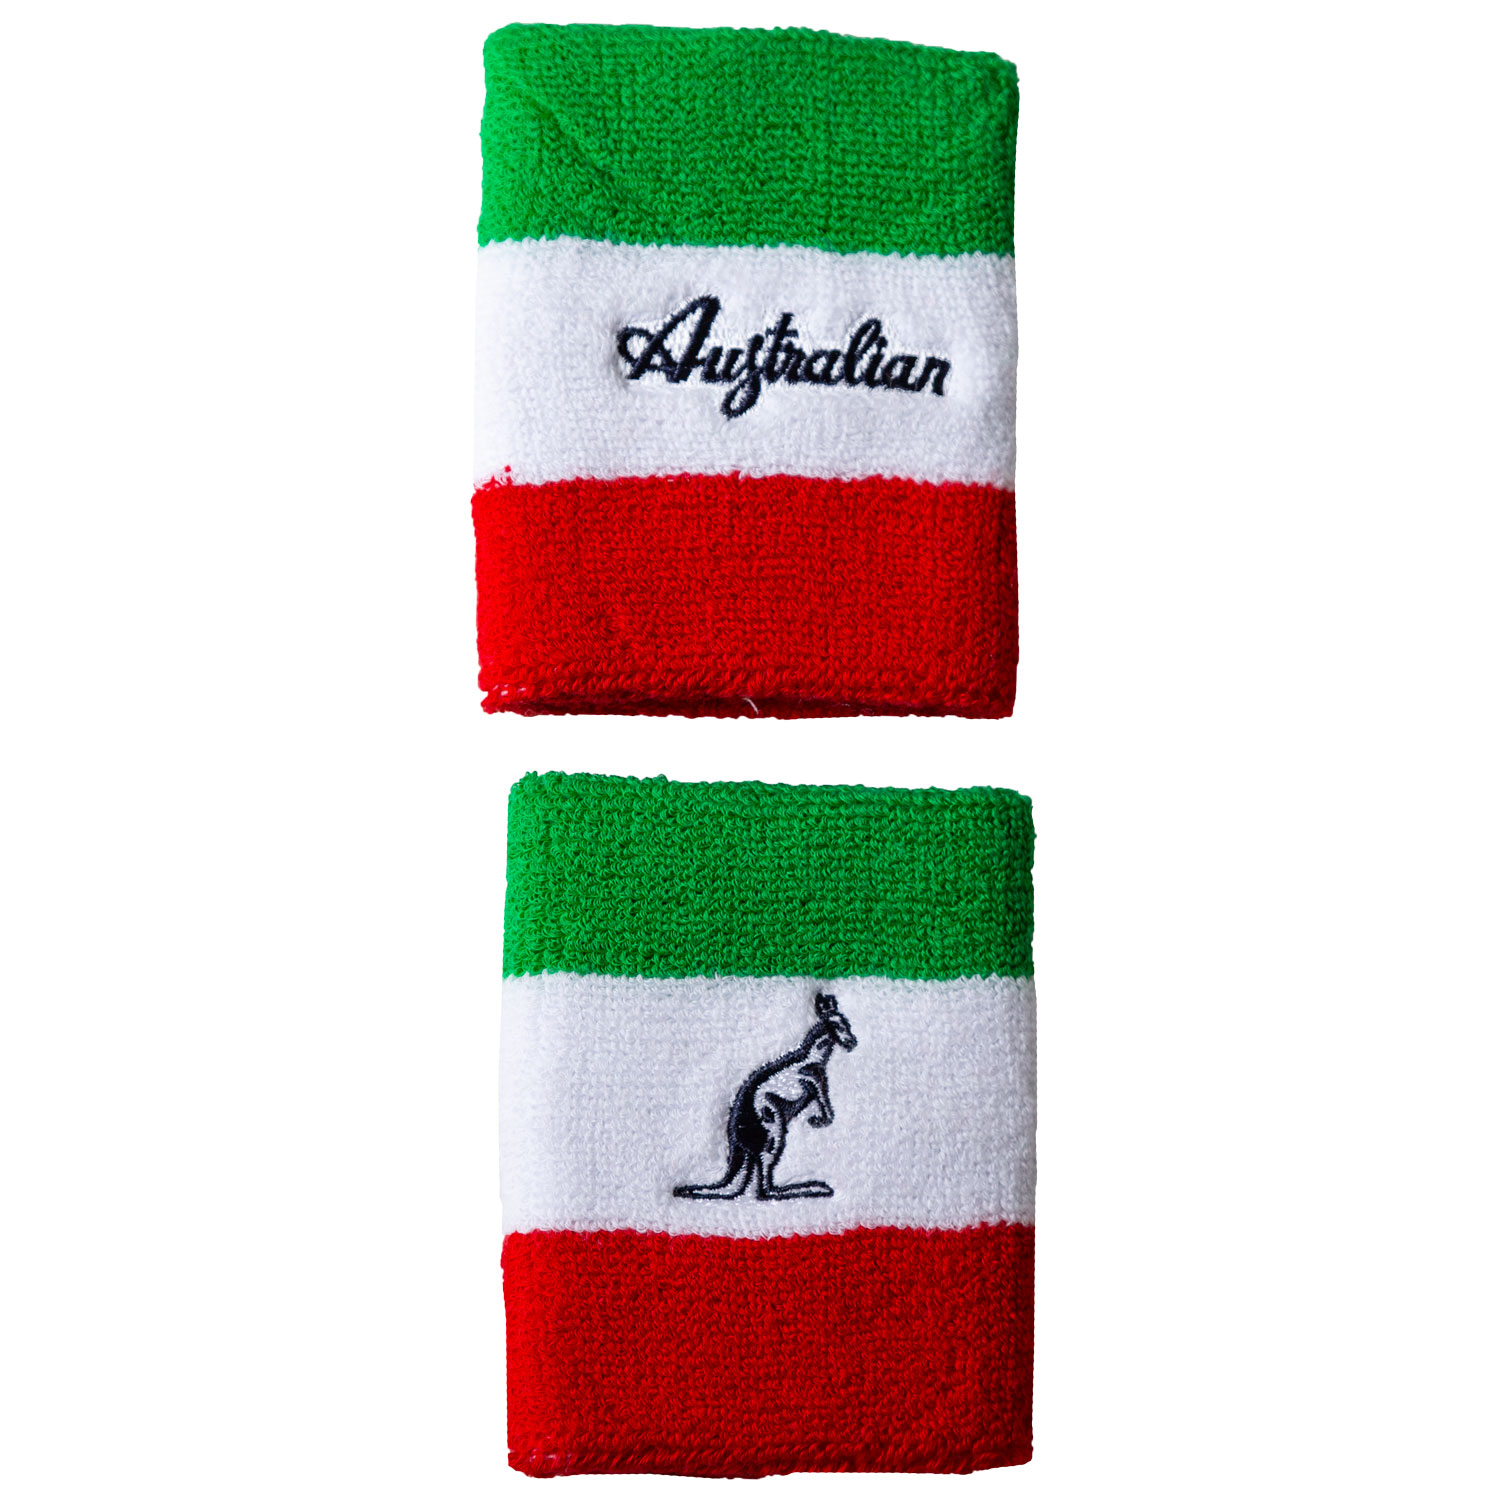 Australian Large Wristbands - Green/White/Red